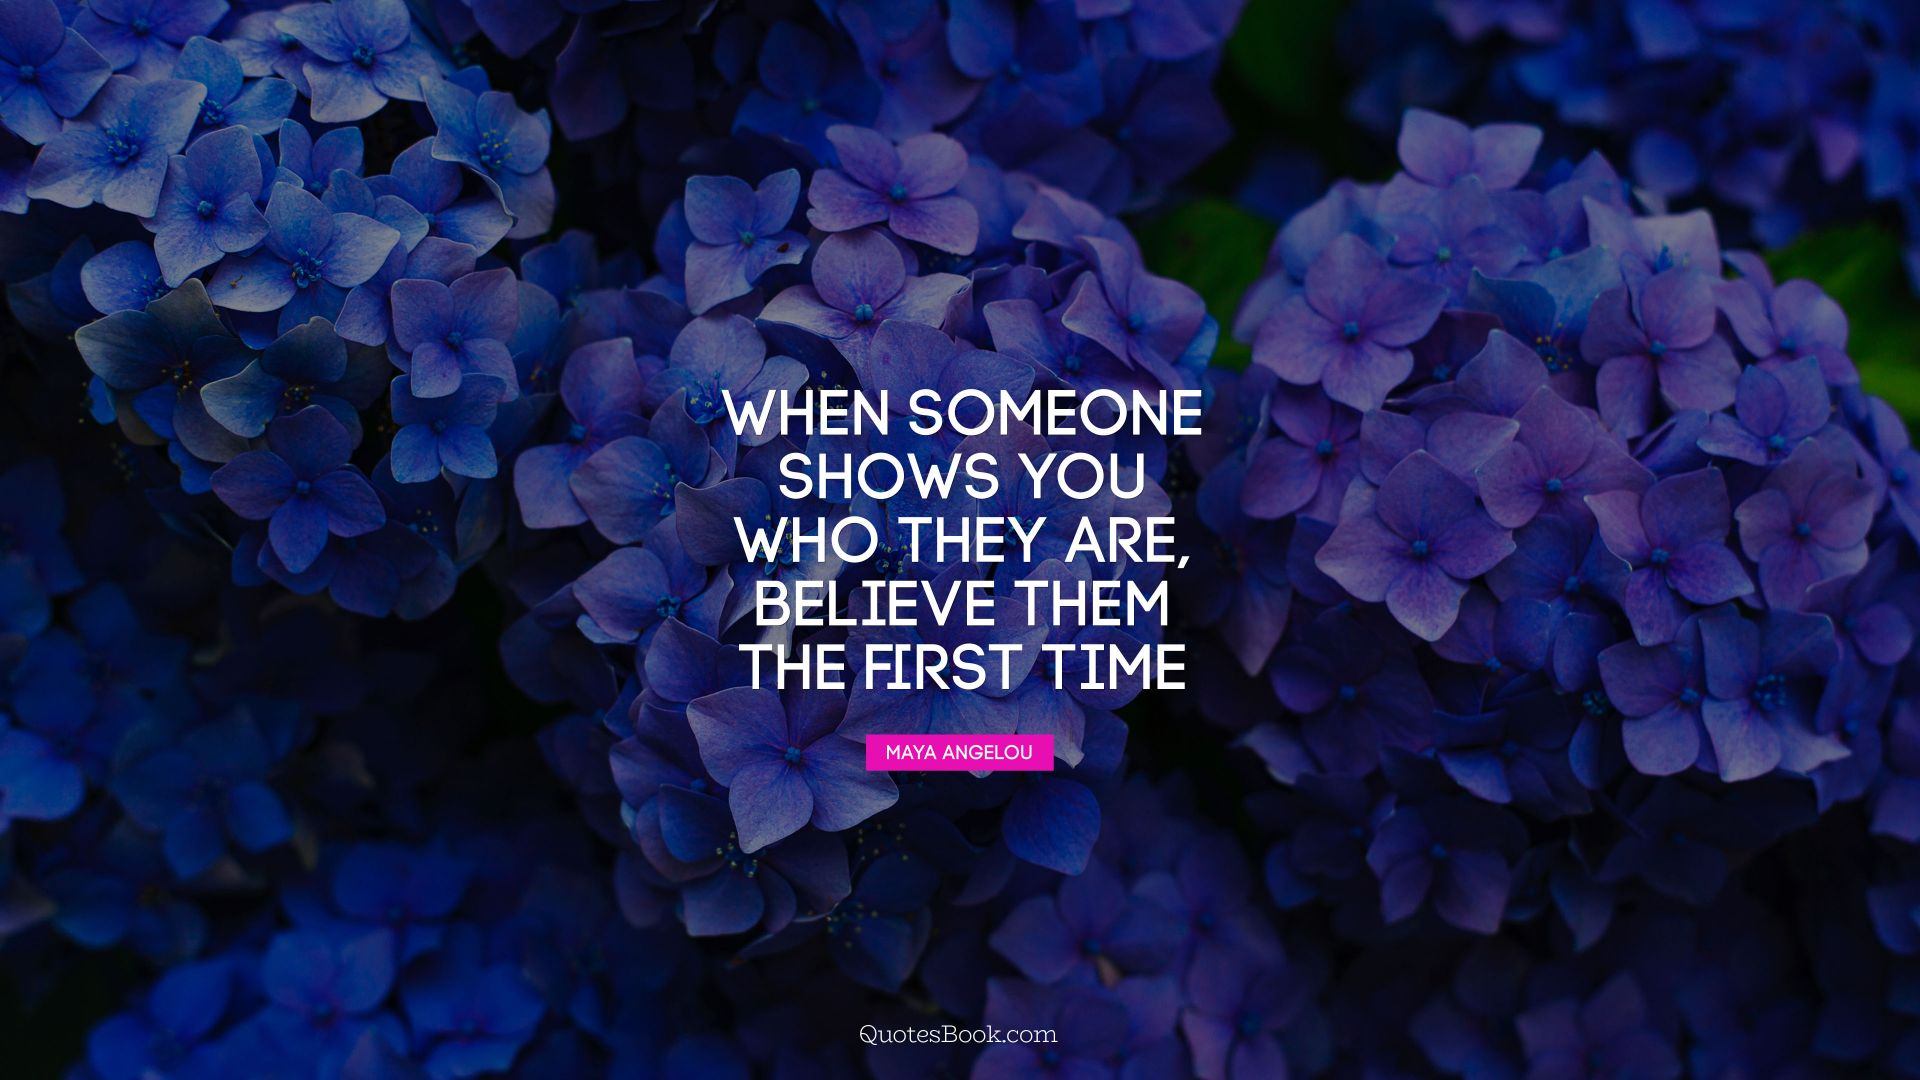 When someone shows you who they are, believe them the first time. - Quote by Maya Angelou